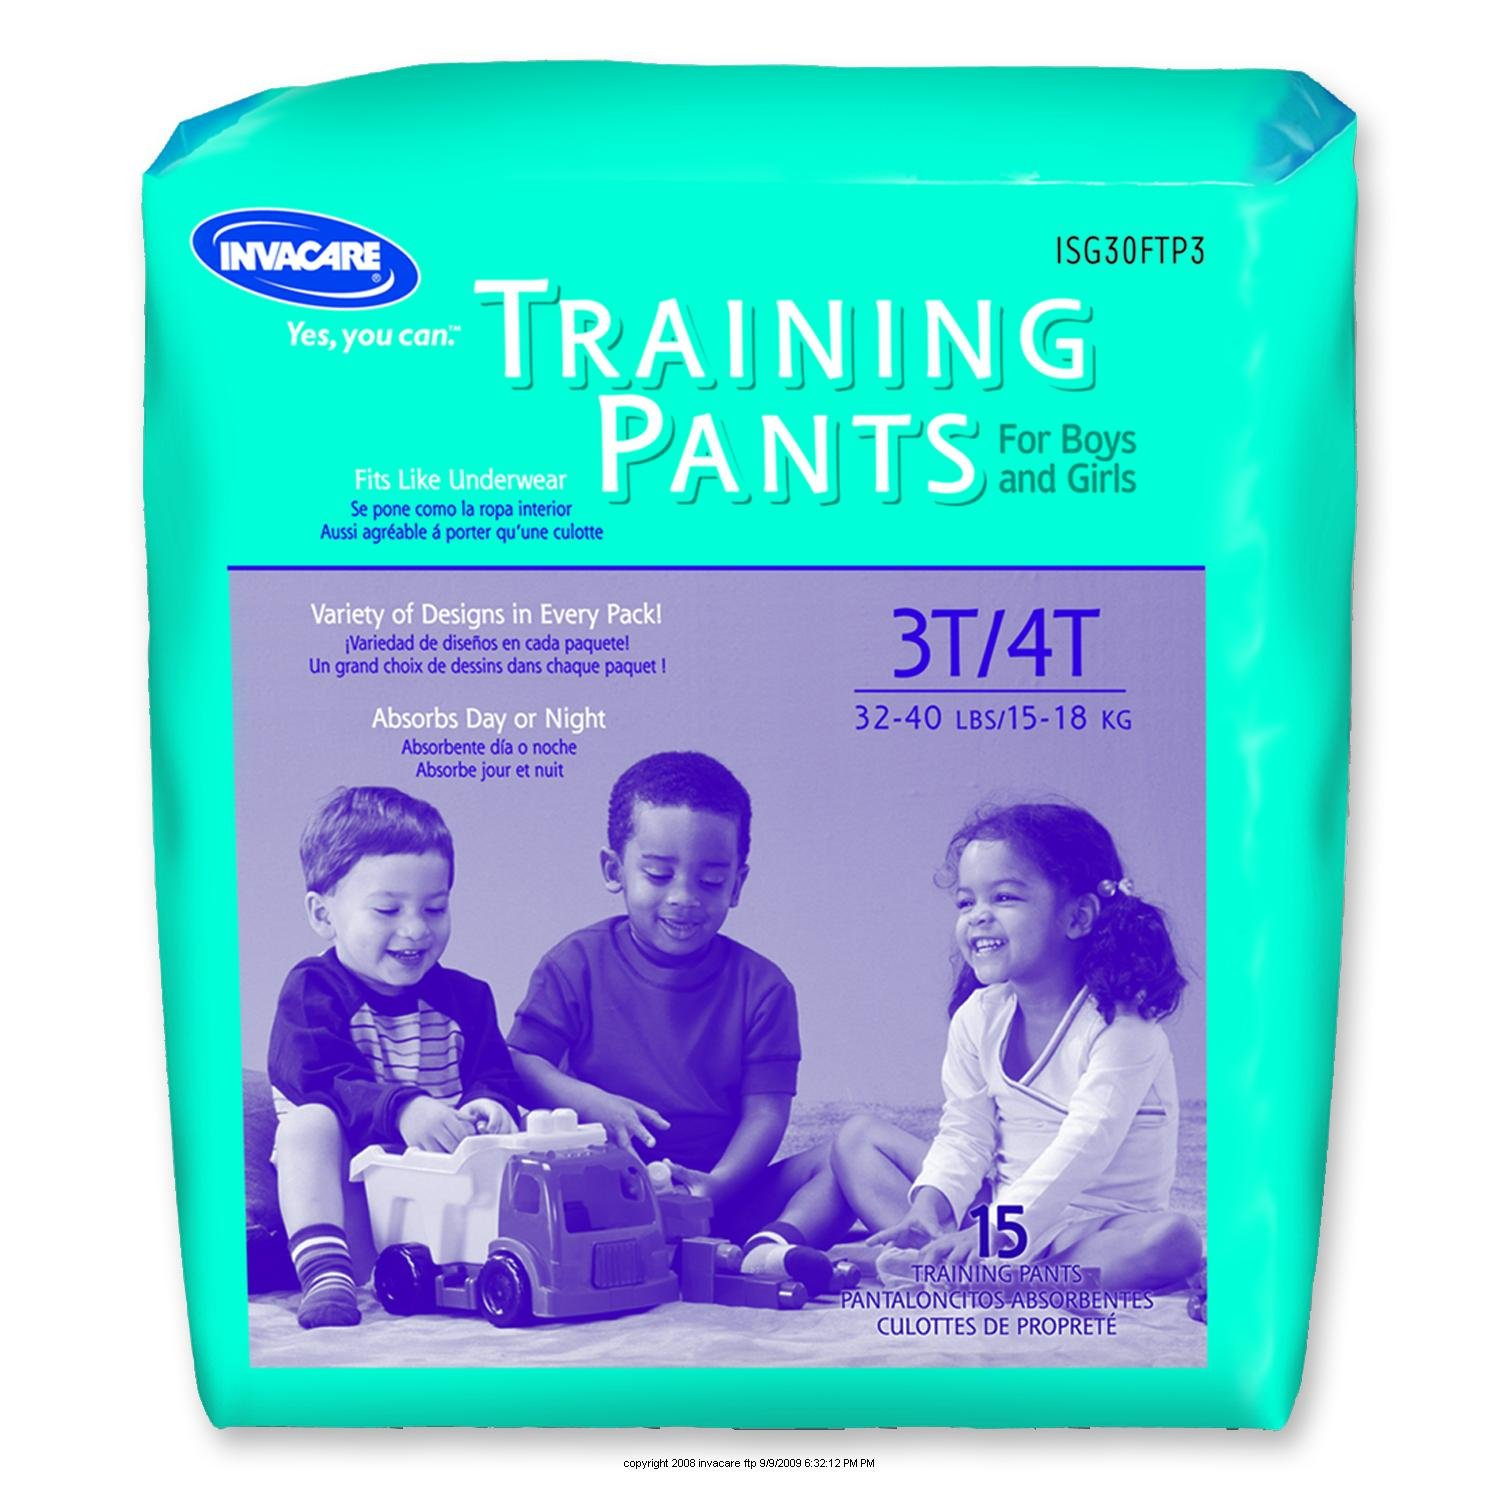 Amazon.com : Invacare Childrens Training Pants, Ib Trnpnt Pullup Unsx Lg, (1 PACK, 15 EACH) : Incontinence Protective Underwear : Beauty